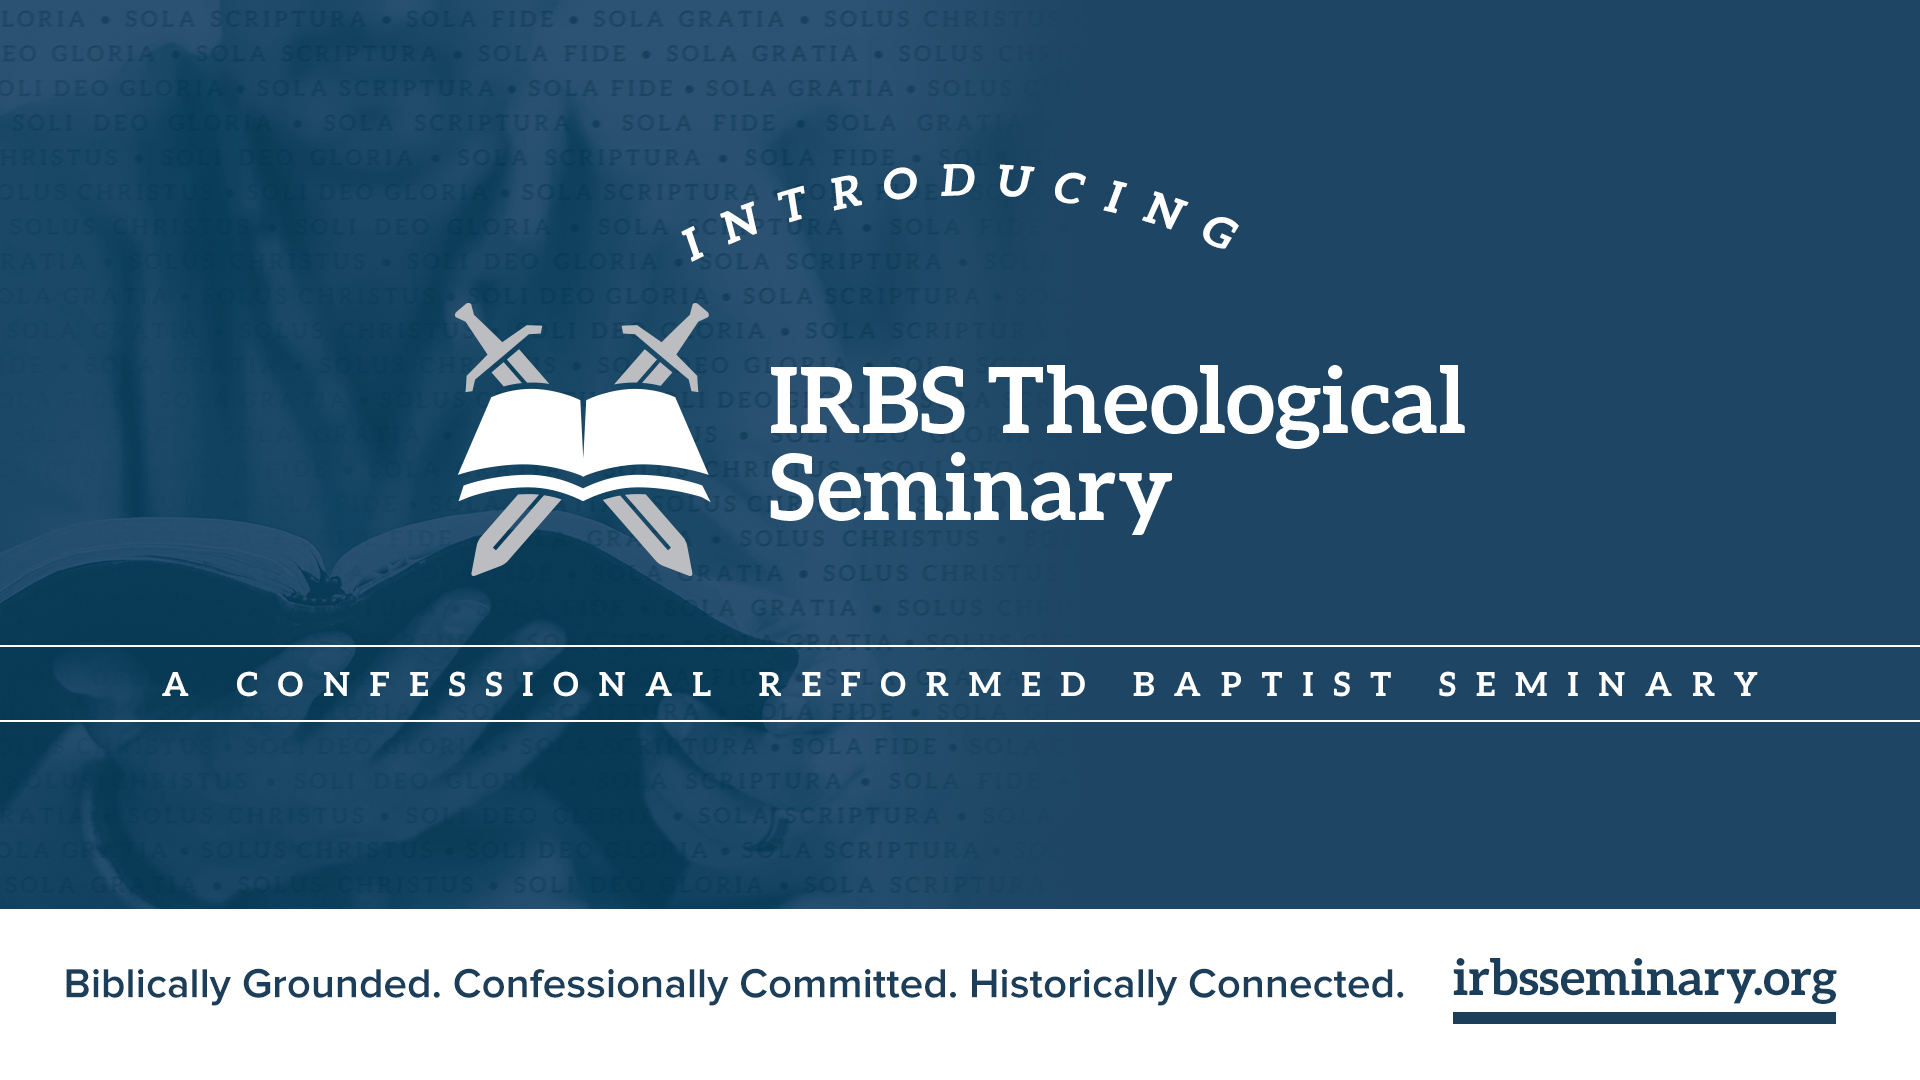 IRBS Theological Seminary